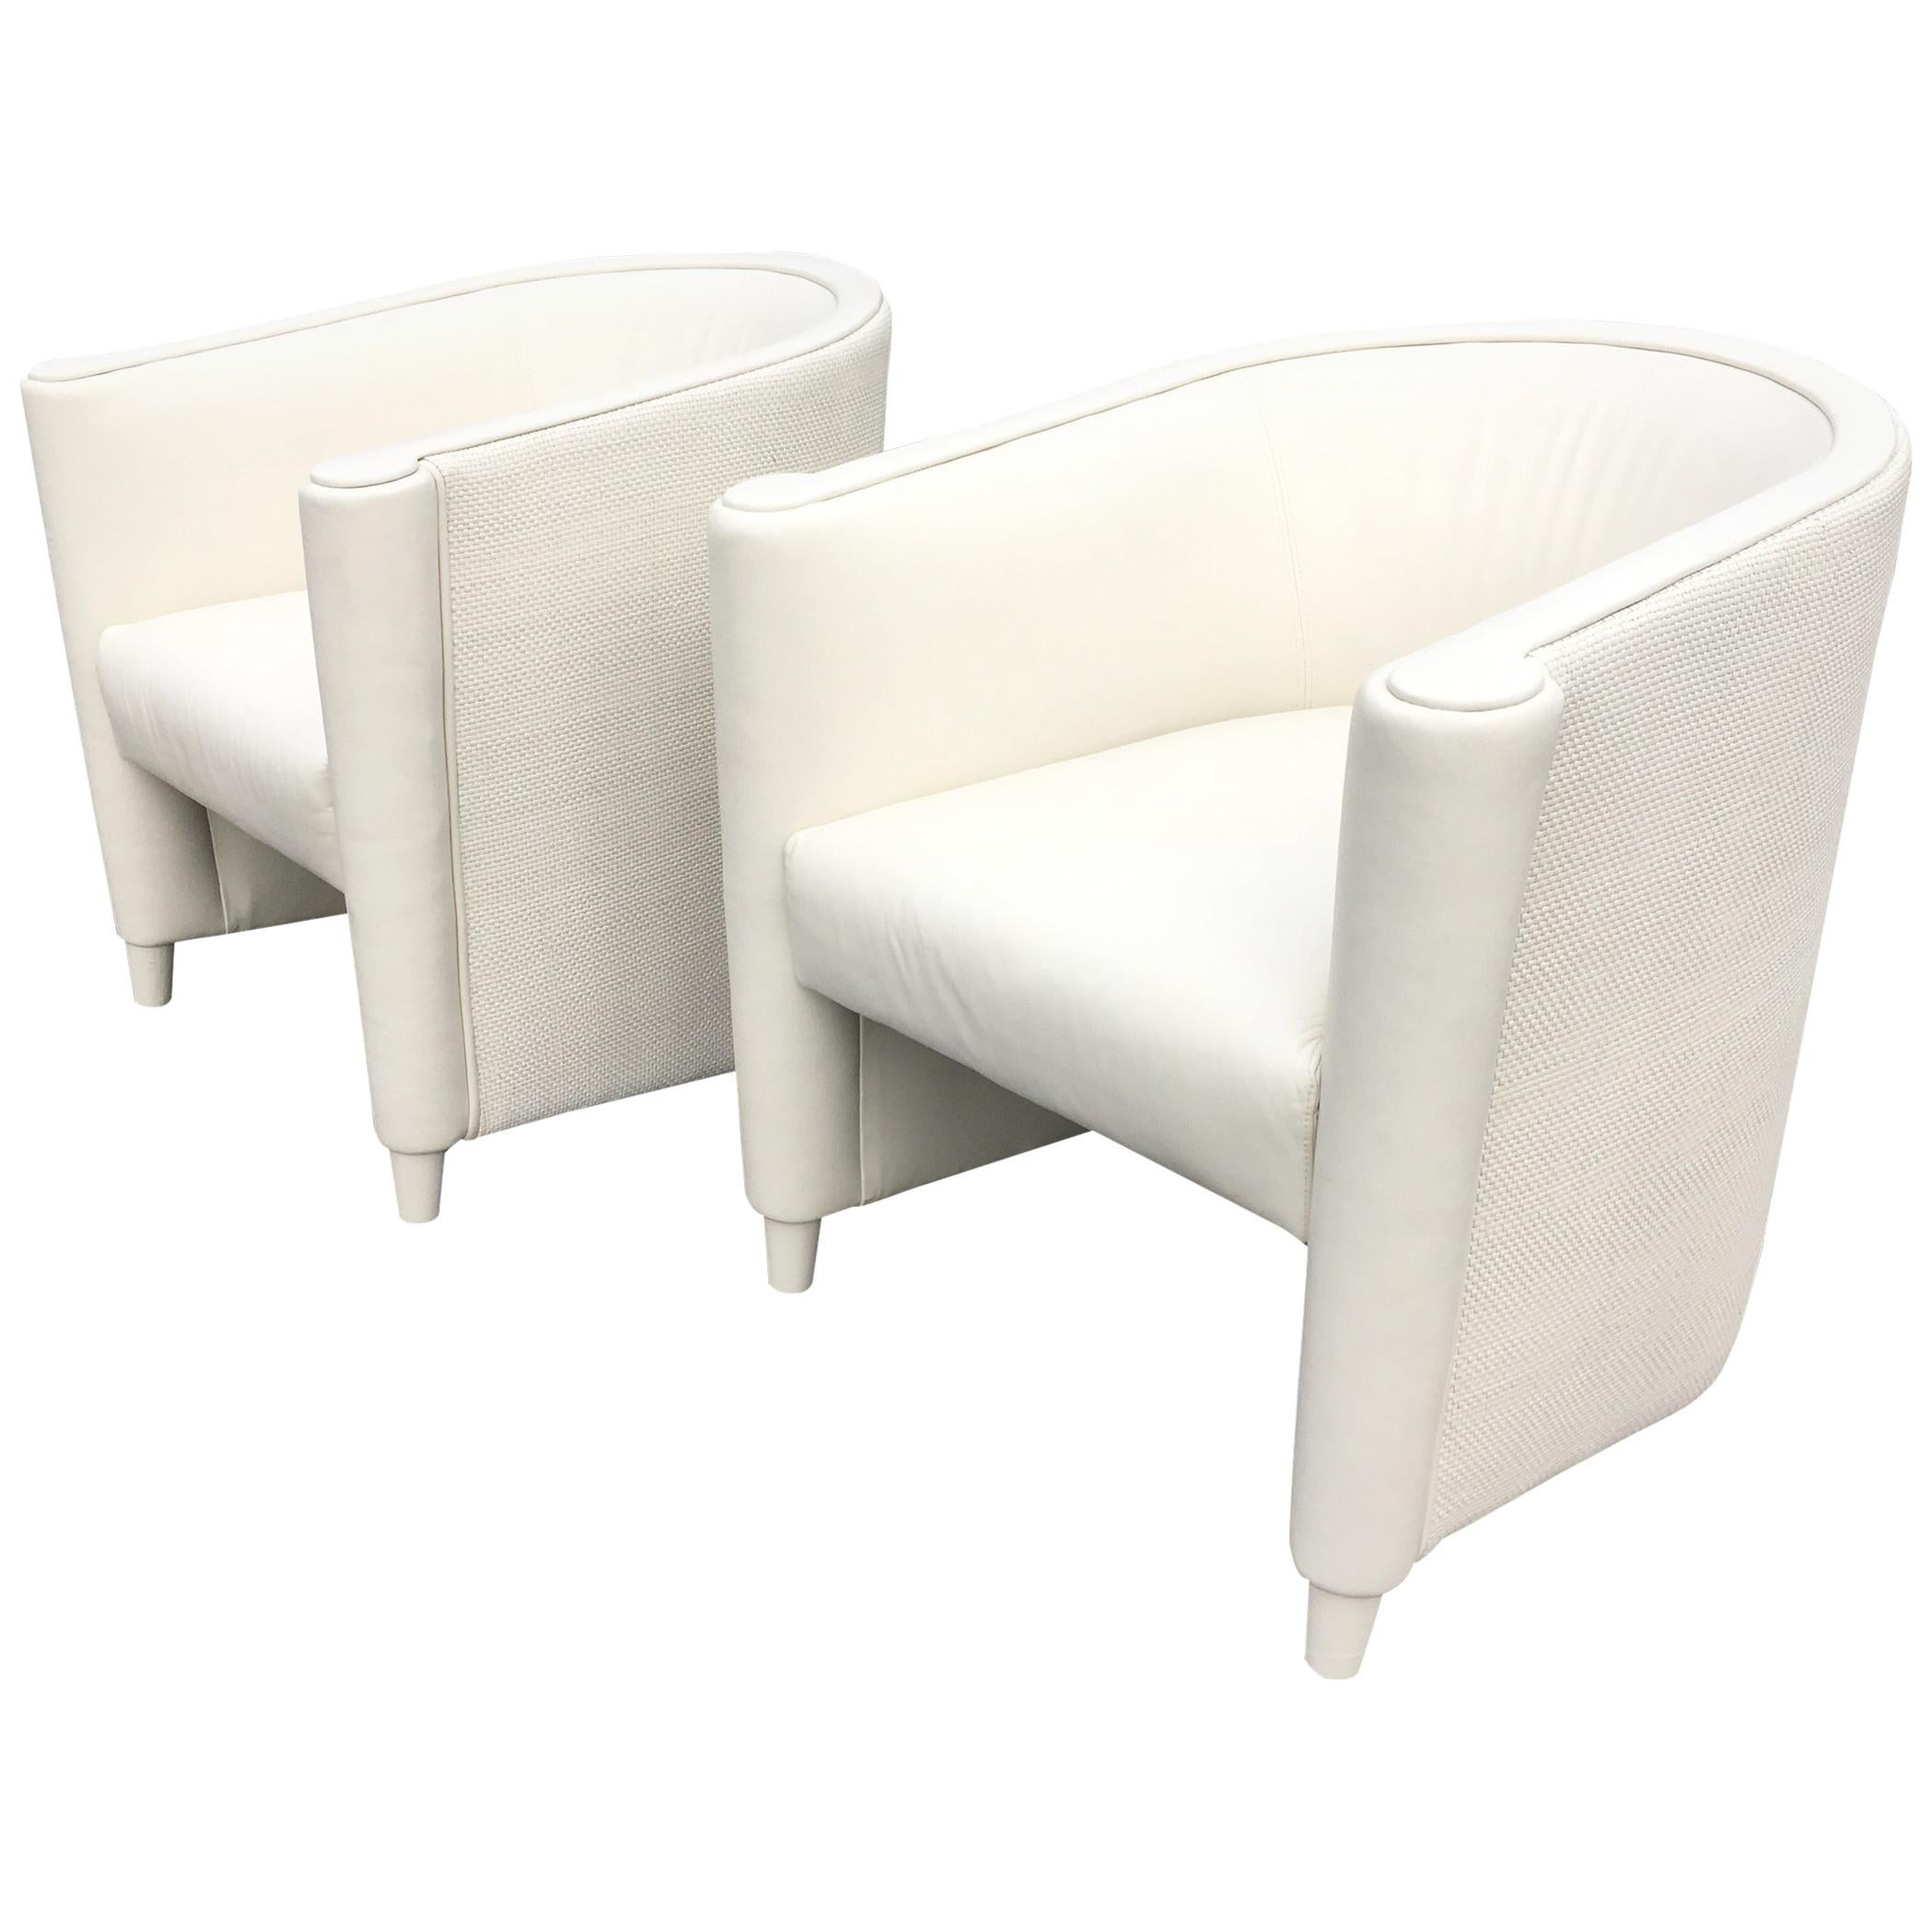 Pair of Leather Lounge Chairs, Art Deco Style, Cream Color